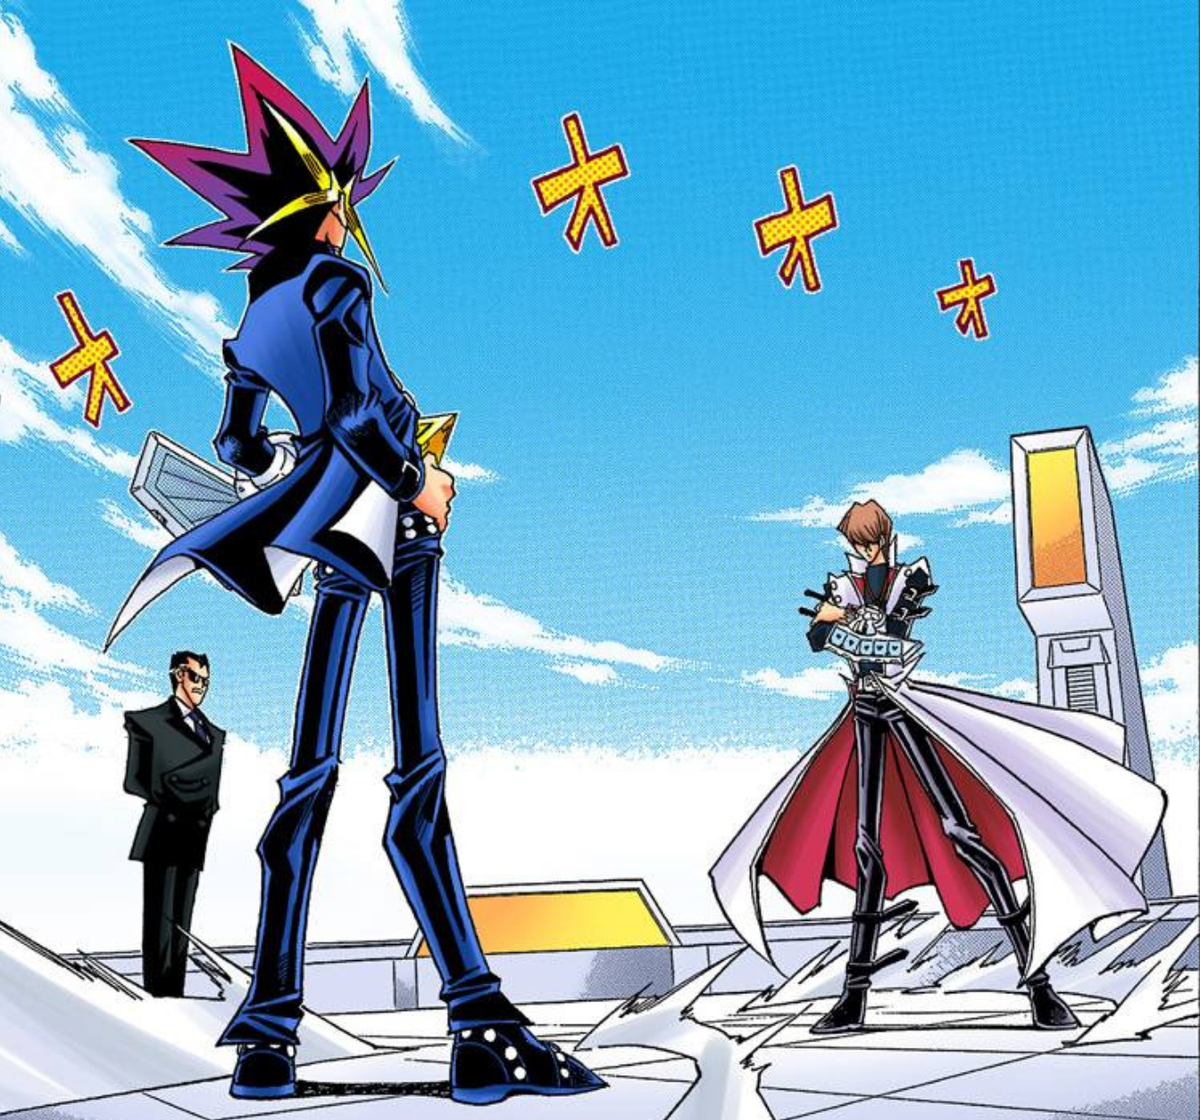 1200px-Dark_Yugi_VS_Kaiba_-_Battle_City.png